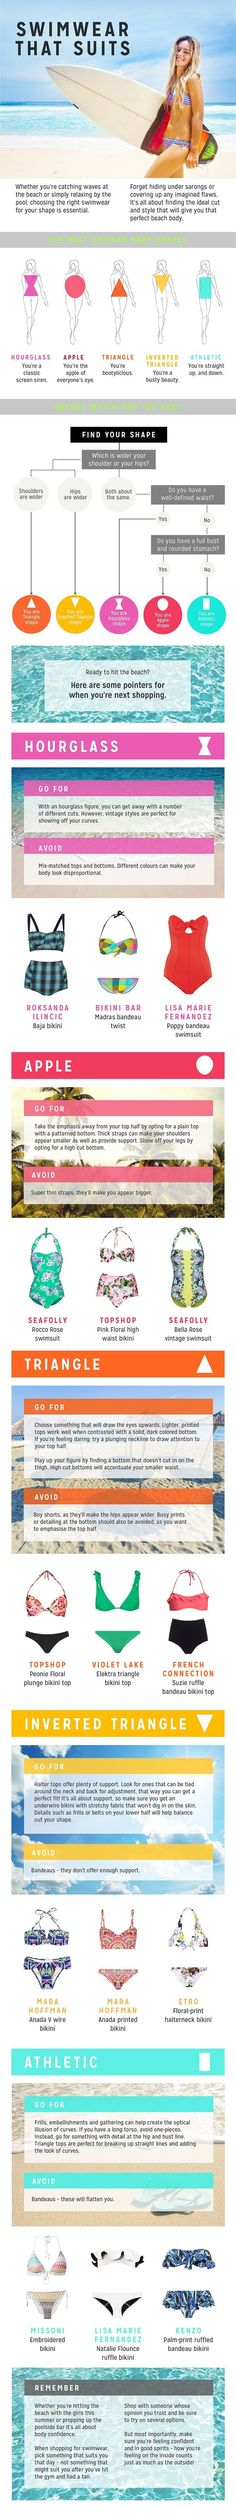 Heading to the beach this spring break or lounging by the pool this summer? This infographic can help you determine the best bathing suits for your body type.